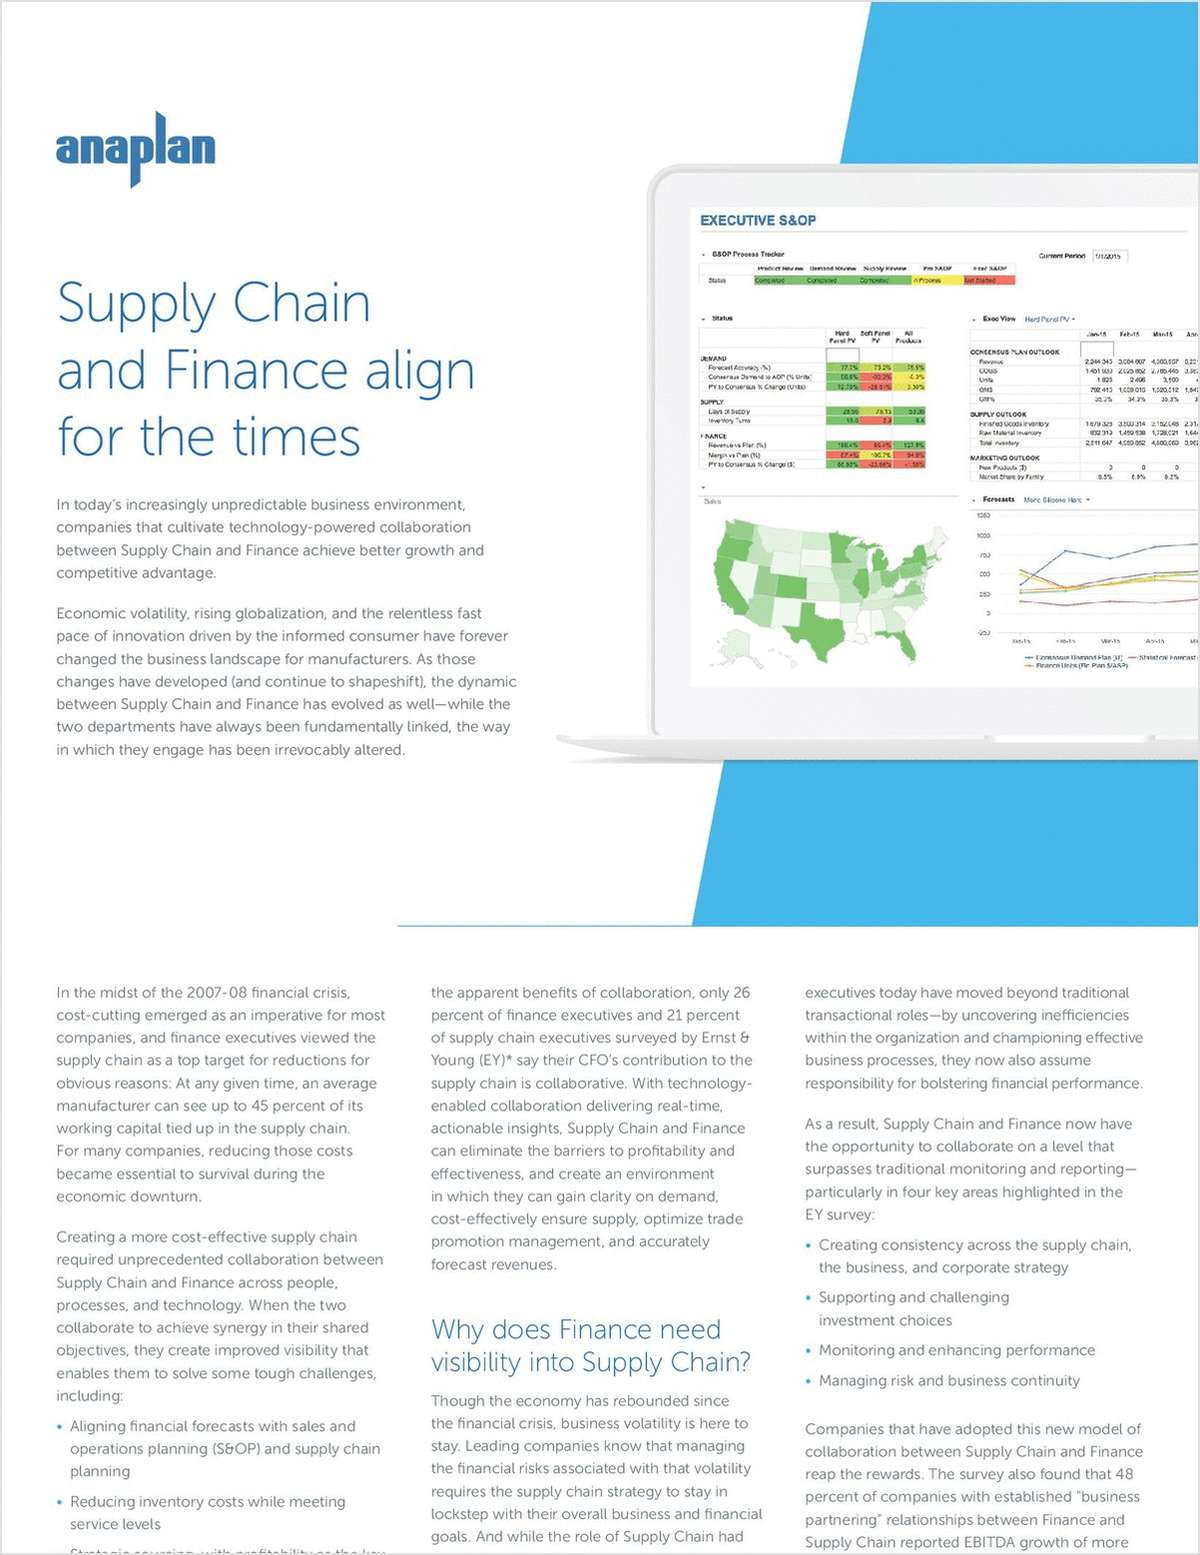 Supply Chain and Finance Align for the Times